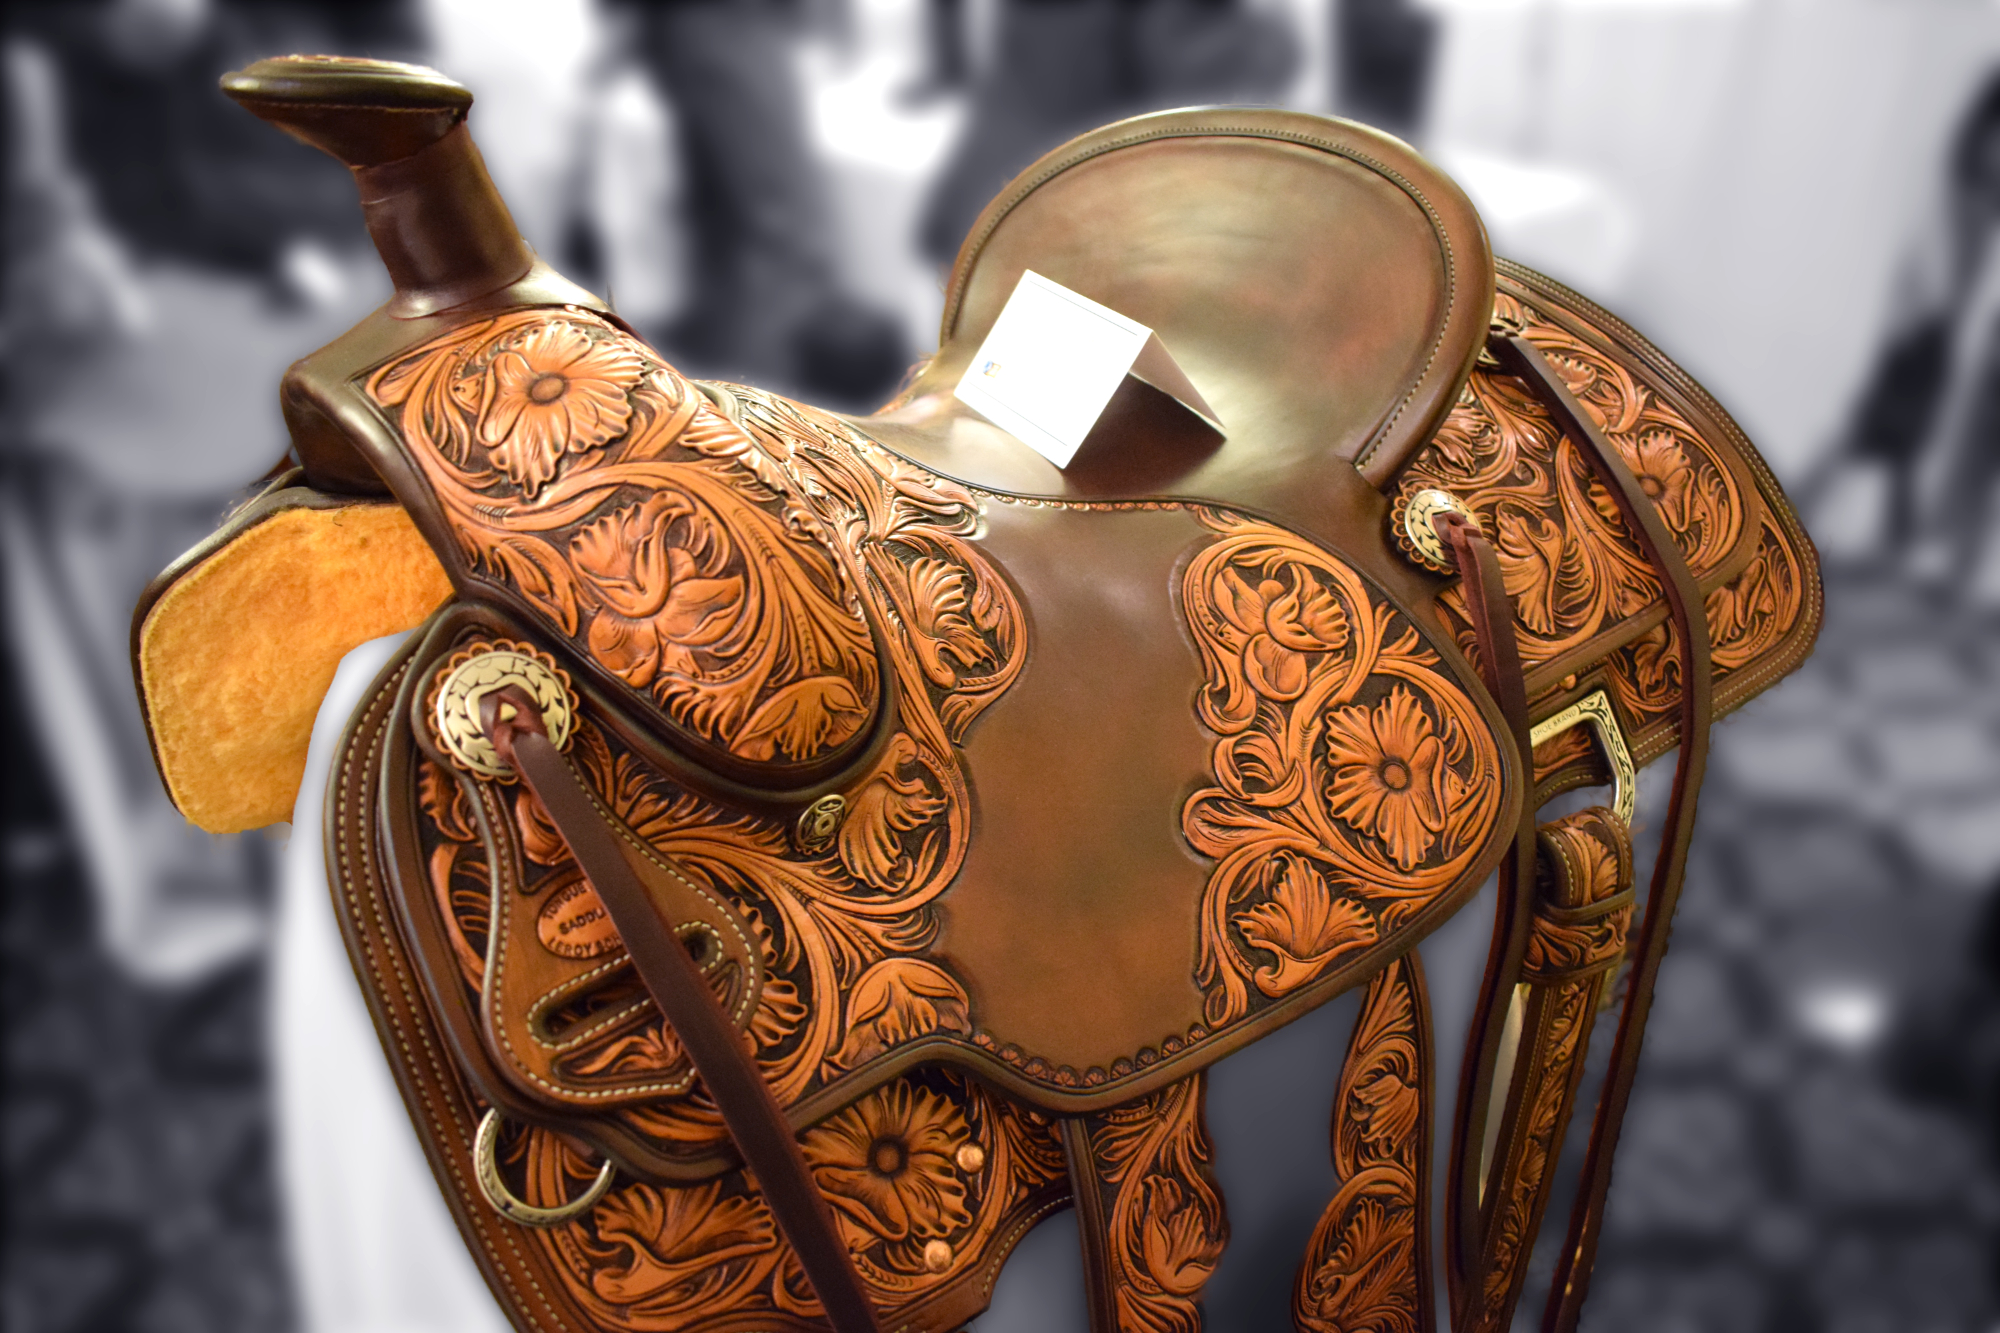 Carved Saddles - Leroy Schwarz - Tongue River Saddlery